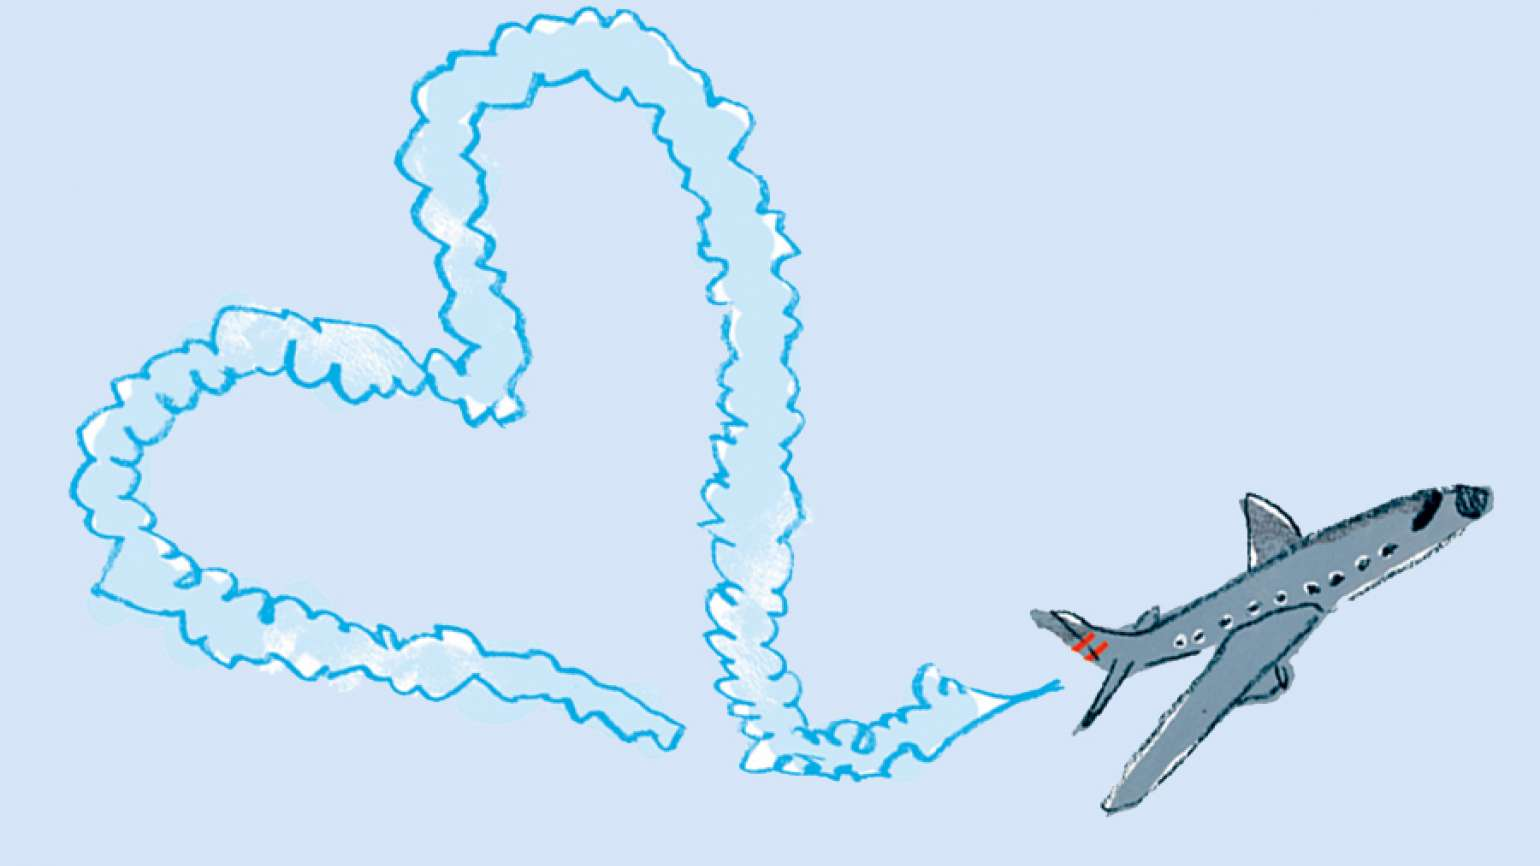 An illustration of a plane leaving a heart-shaped smoke trail